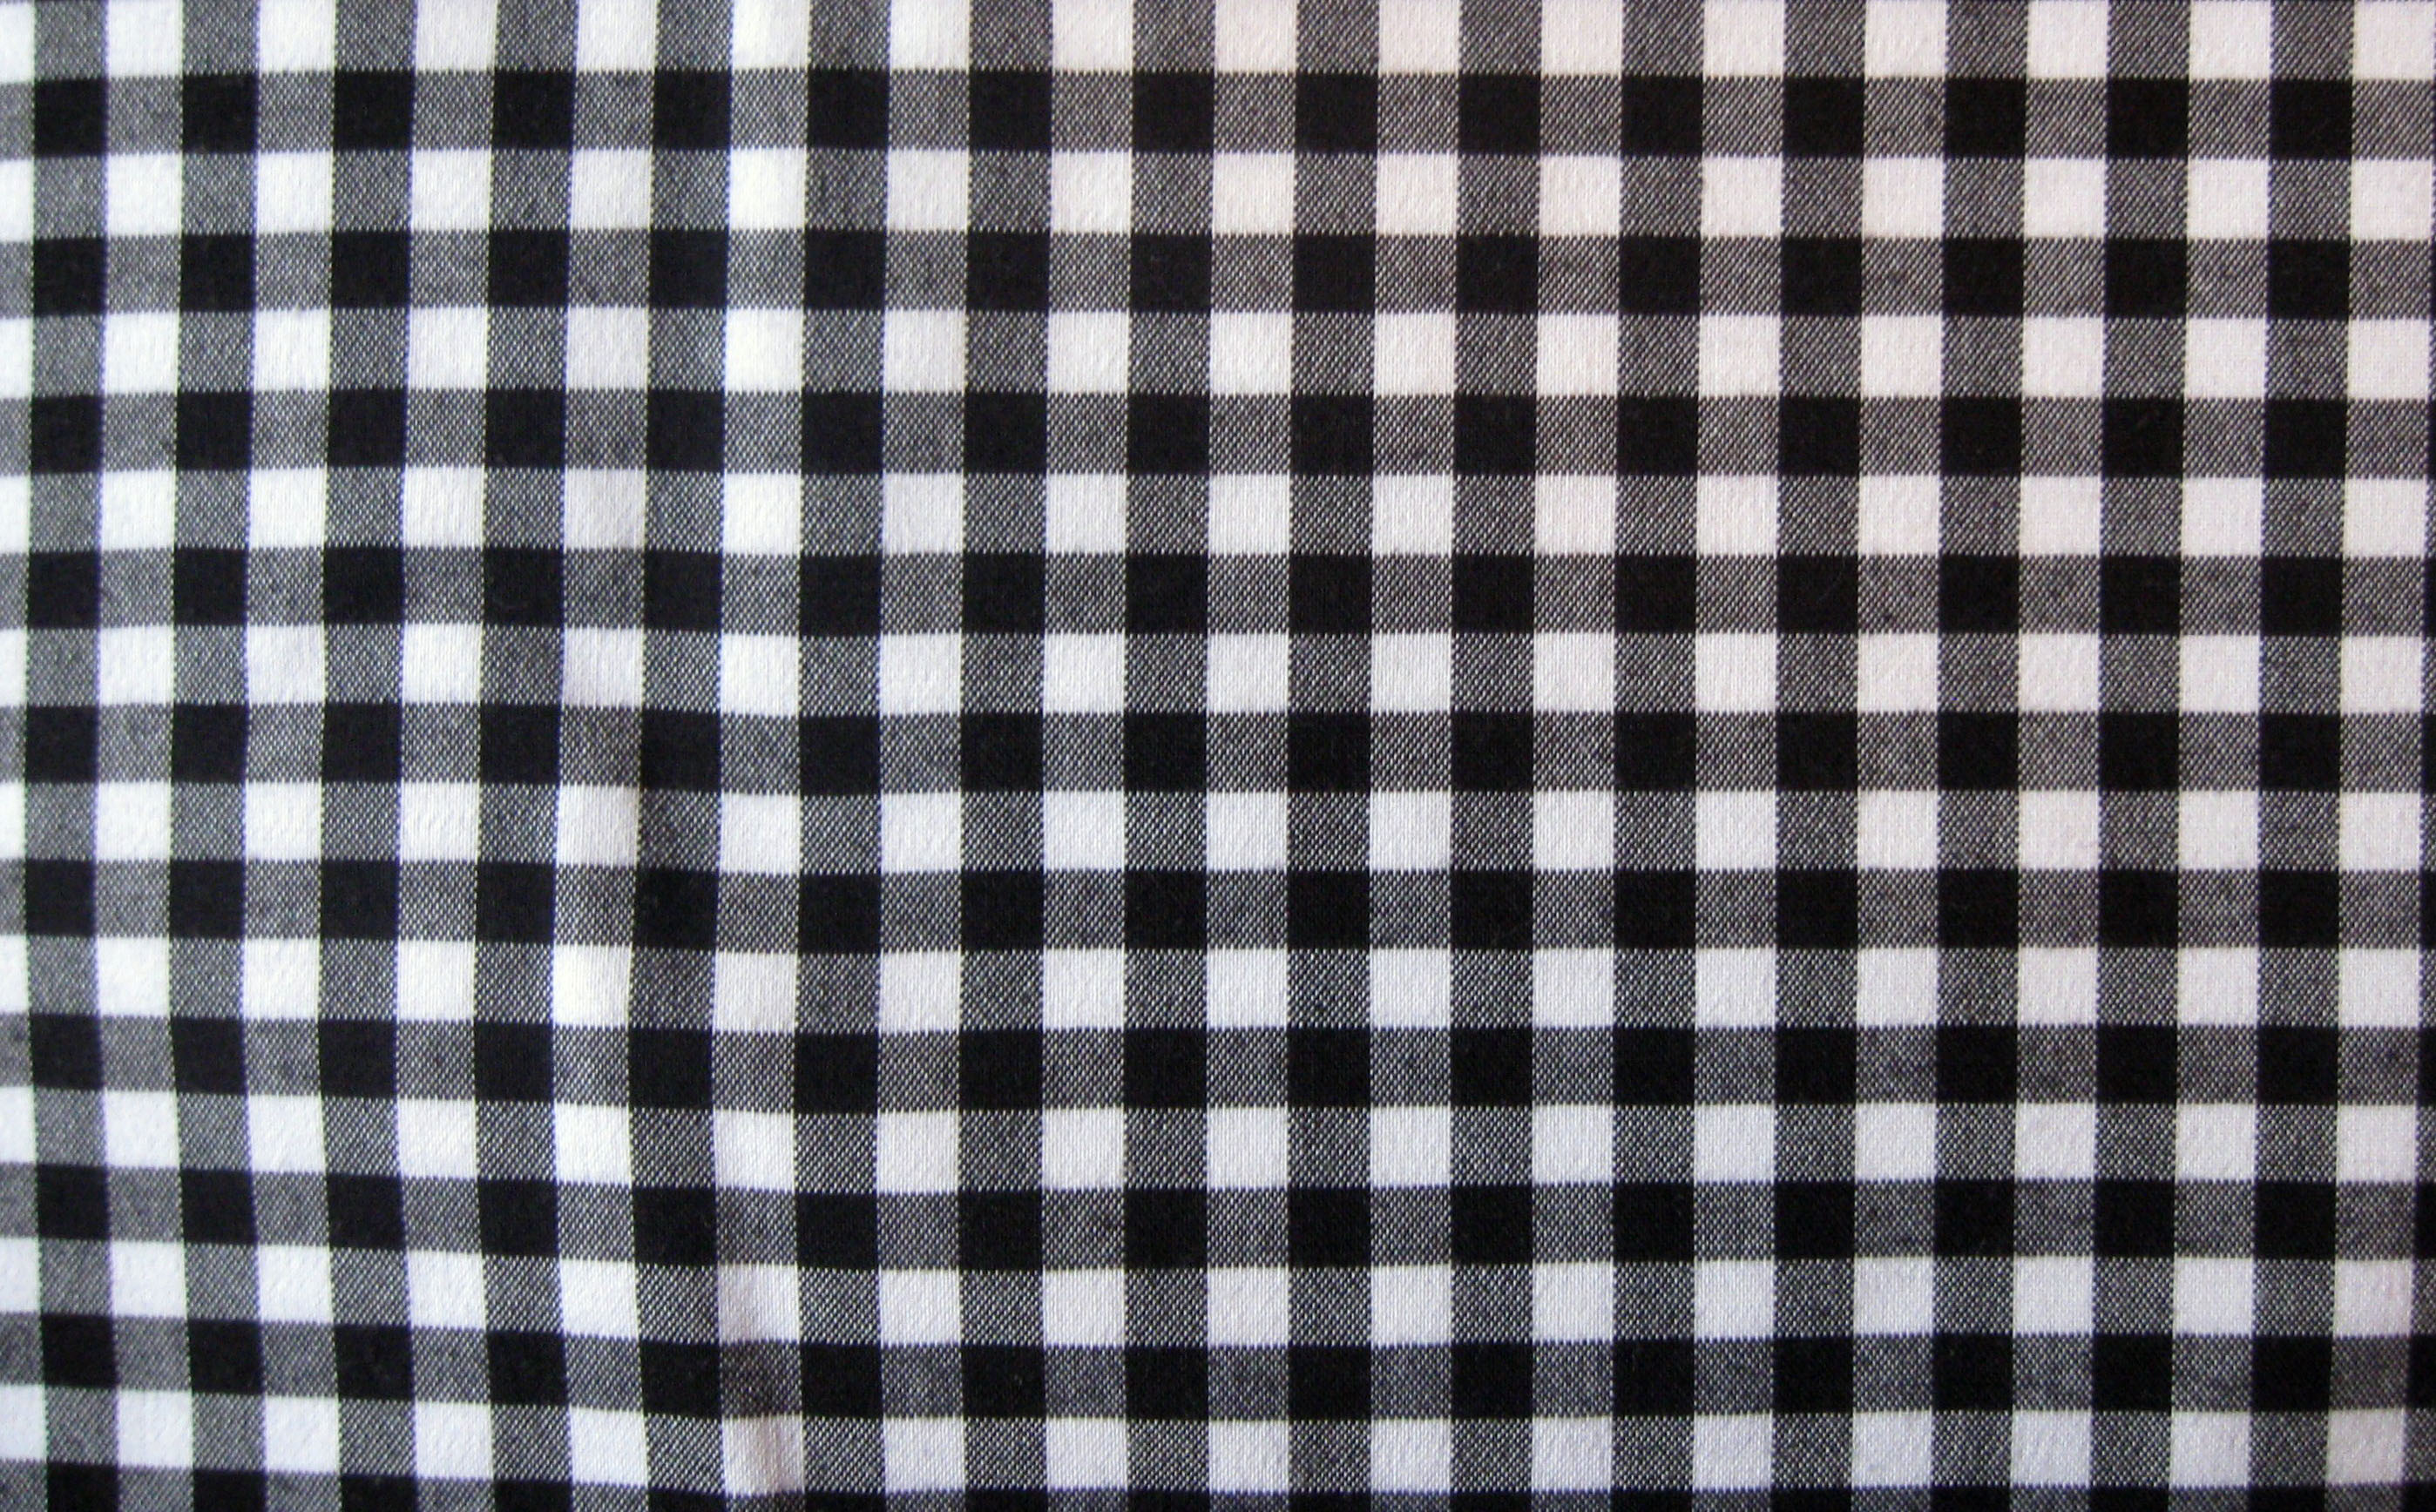 Checkered fabric texture photo